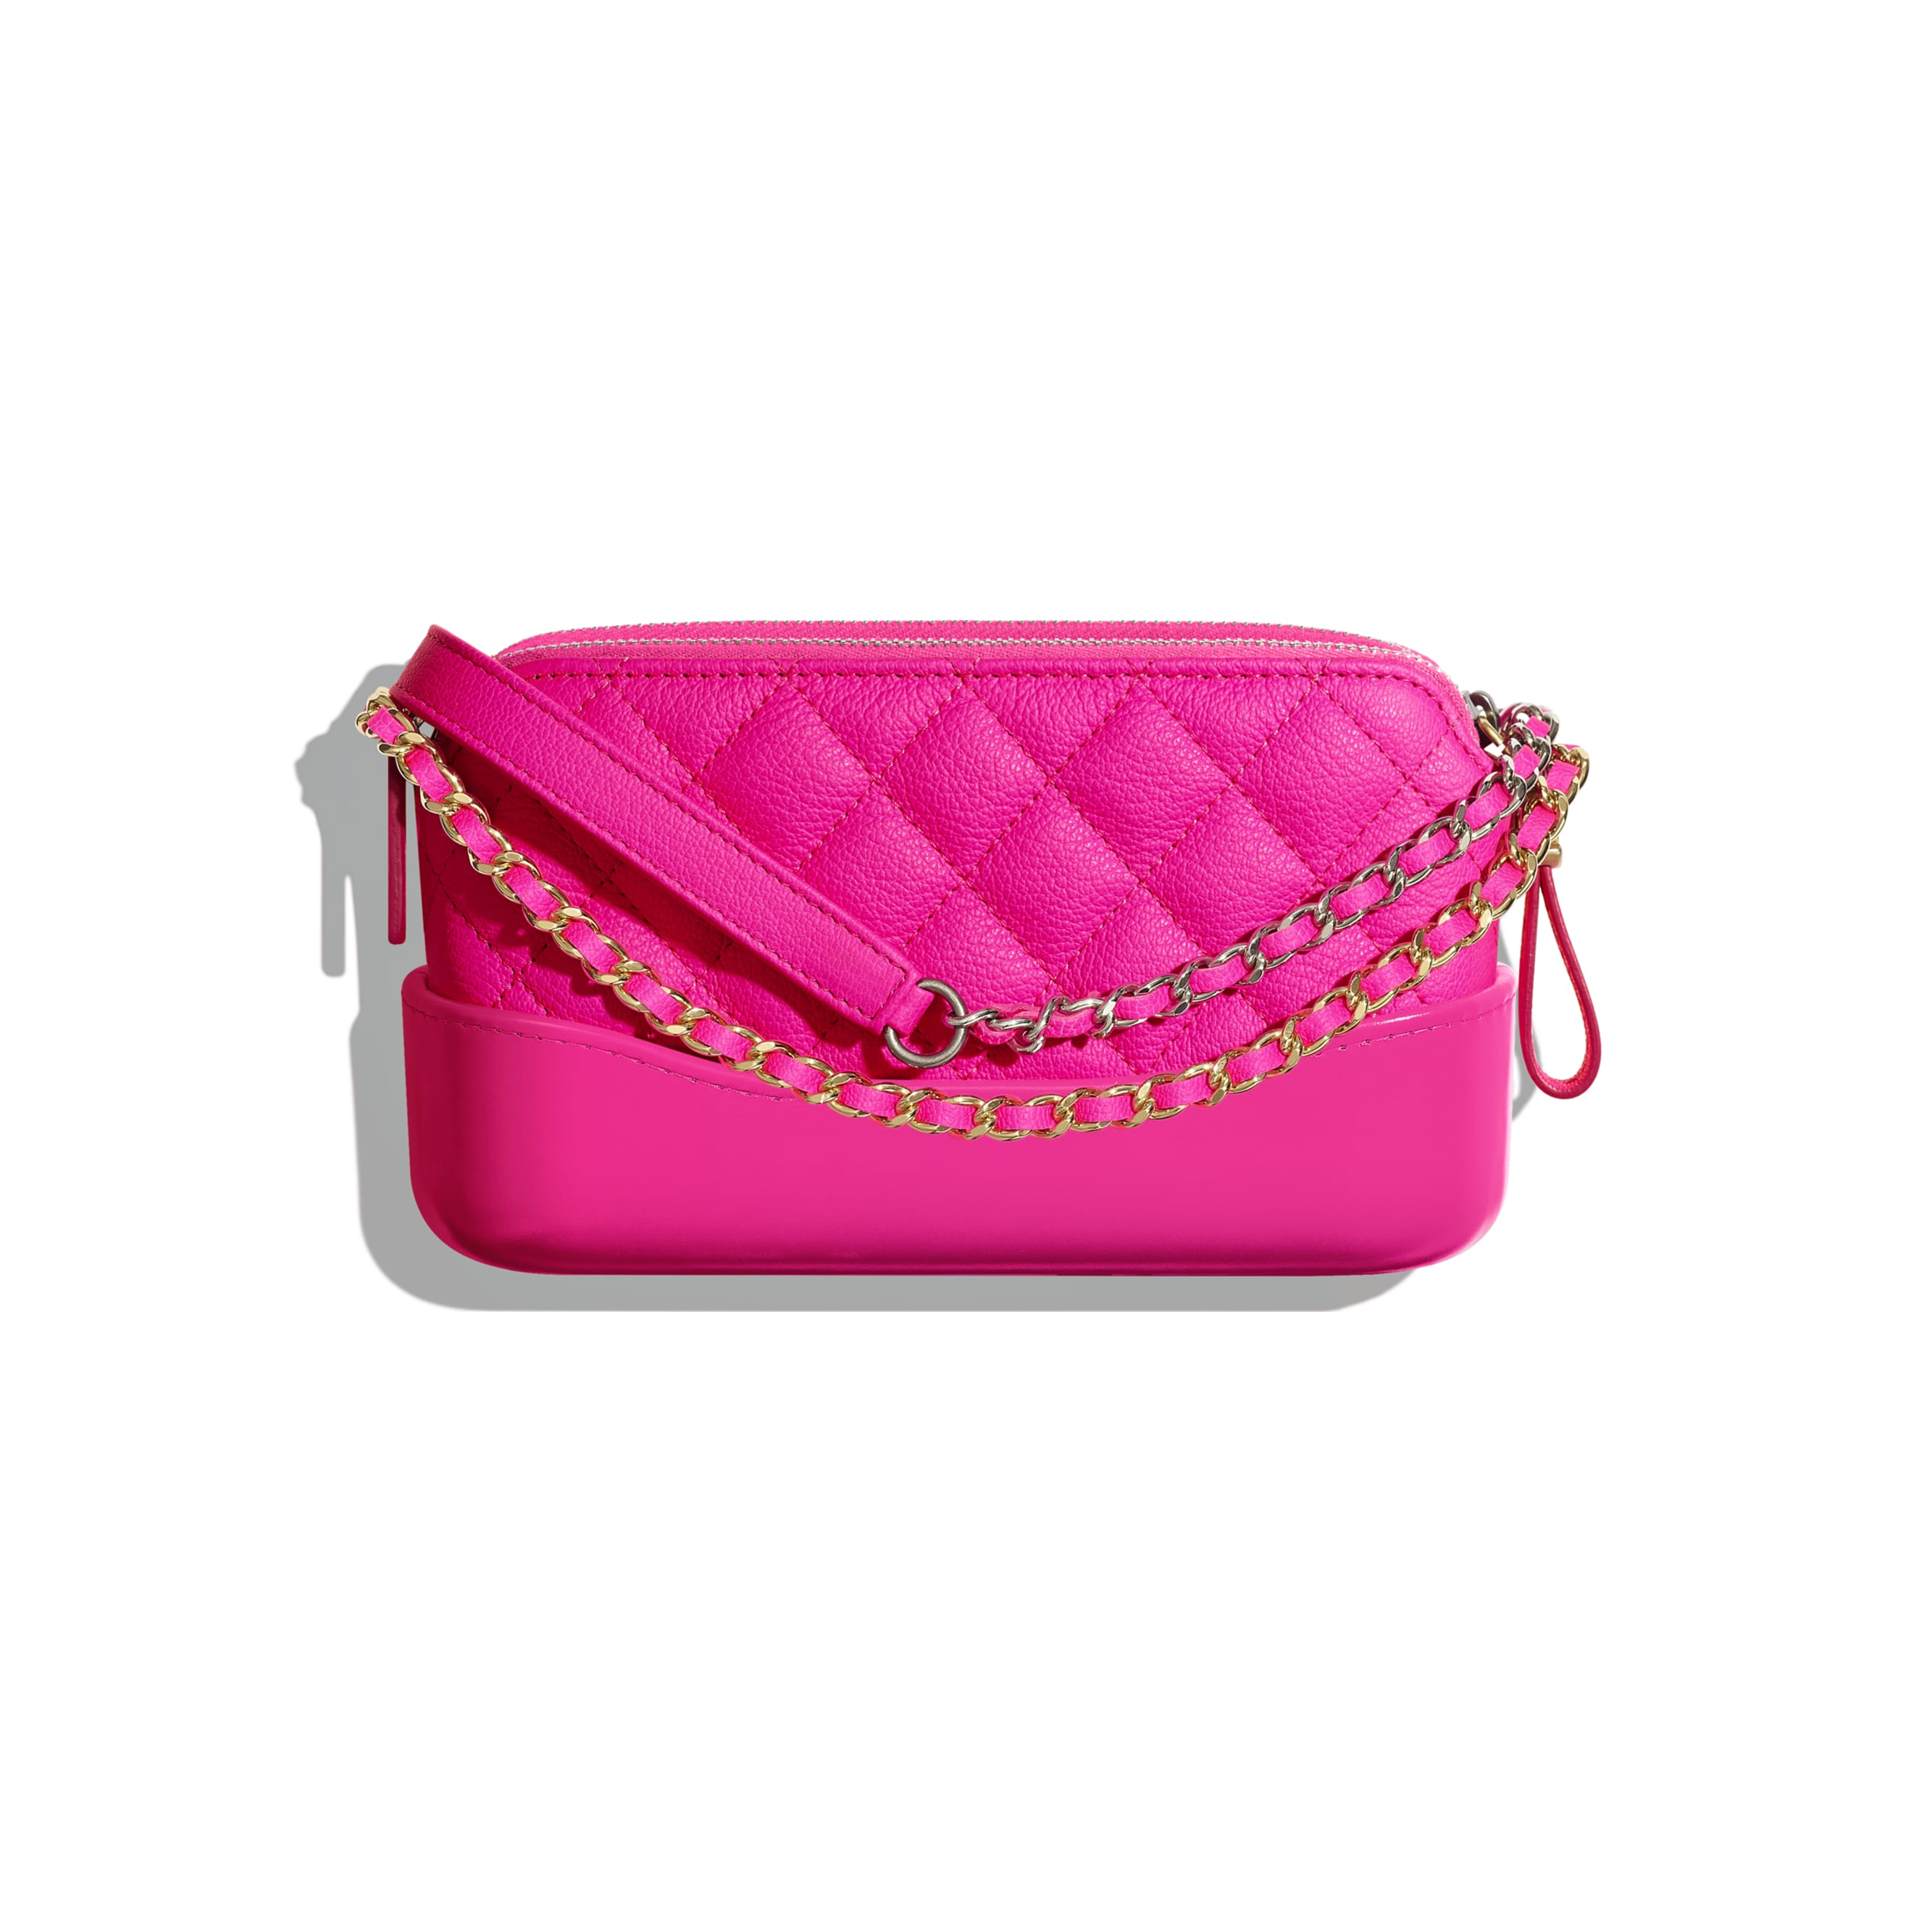 Clutch With Chain - Pink - Goatskin, Gold-Tone & Silver-Tone Metal - CHANEL - Alternative view - see standard sized version